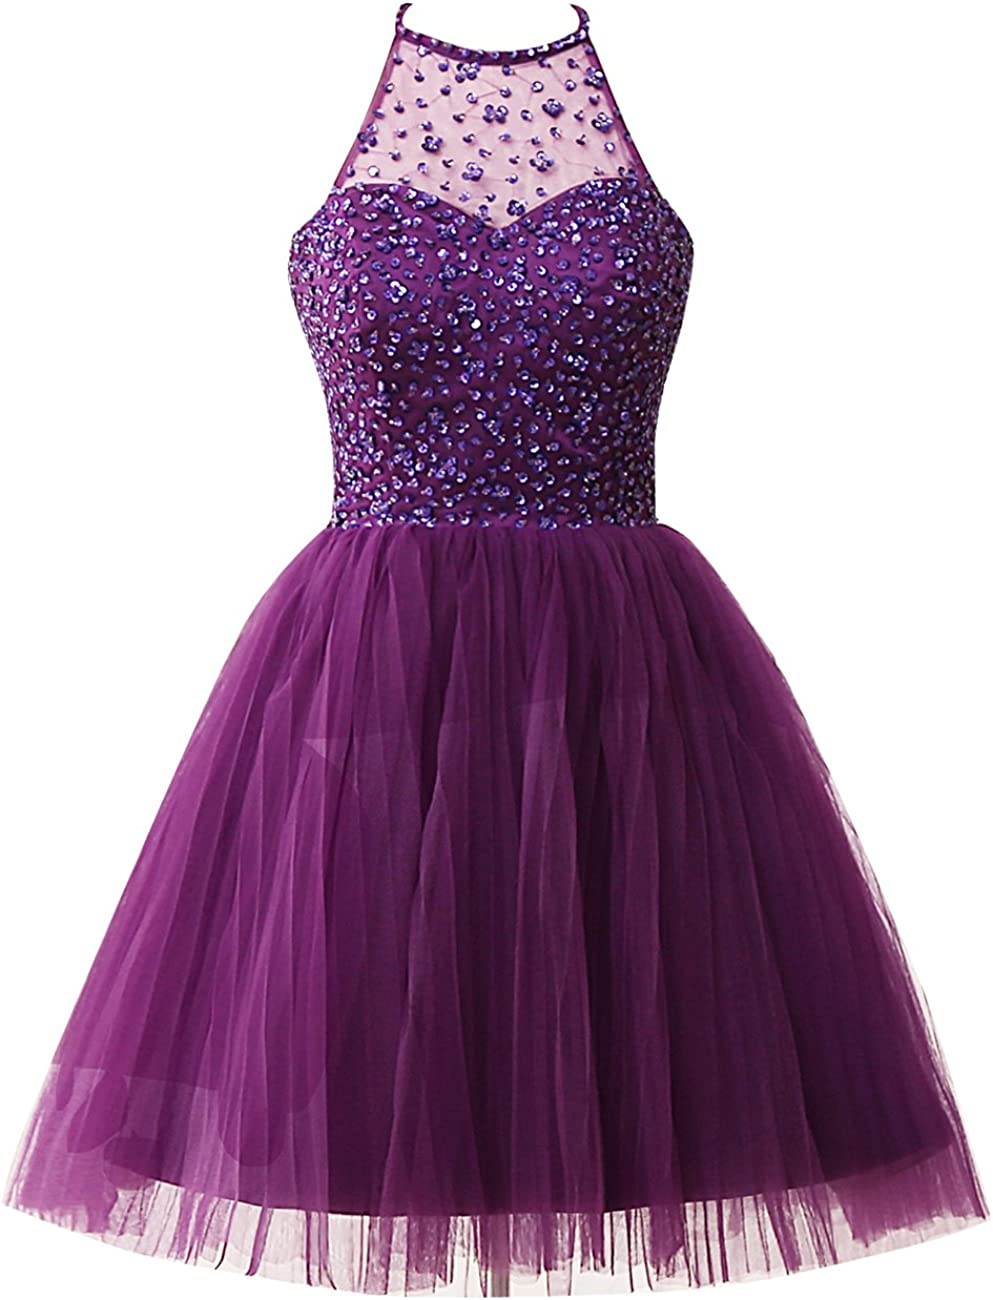 Homecoming Dress Short Cocktail Party Dresses Halter Prom Dress Beading Tulle Homecoming Dresses